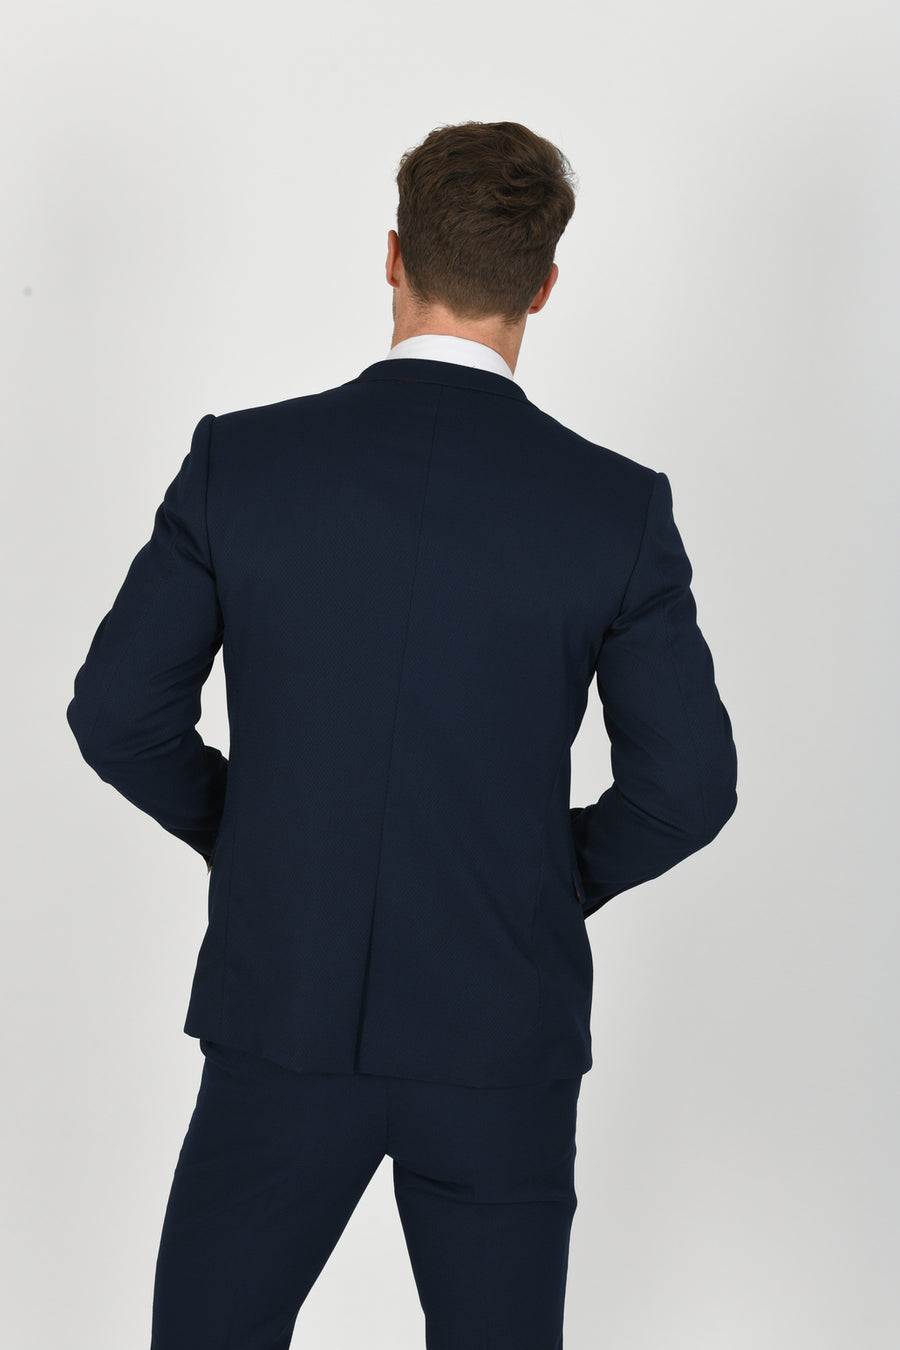 Max Royal Blue Wedding Jacket - Wedding Suit Direct